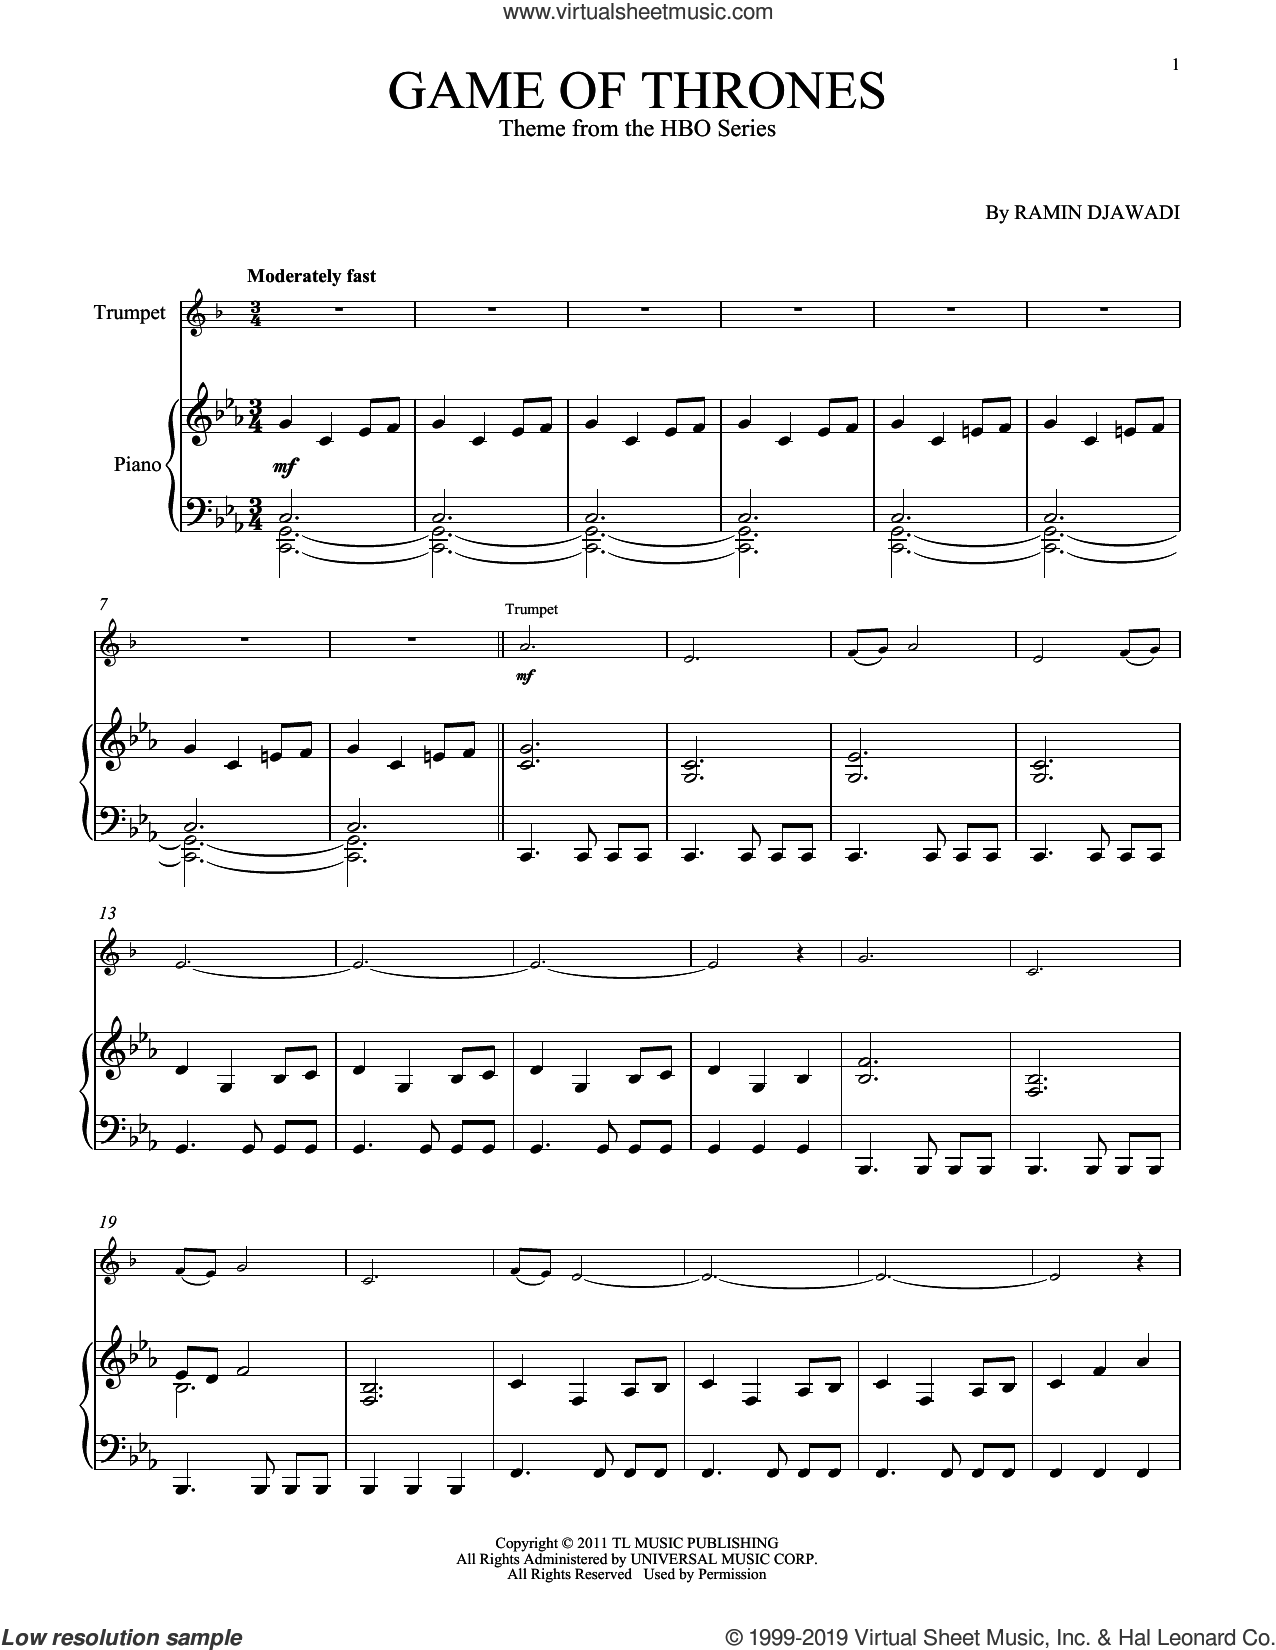 Game Of Thrones sheet music for trumpet and piano by Ramin Djawadi, intermediate skill level